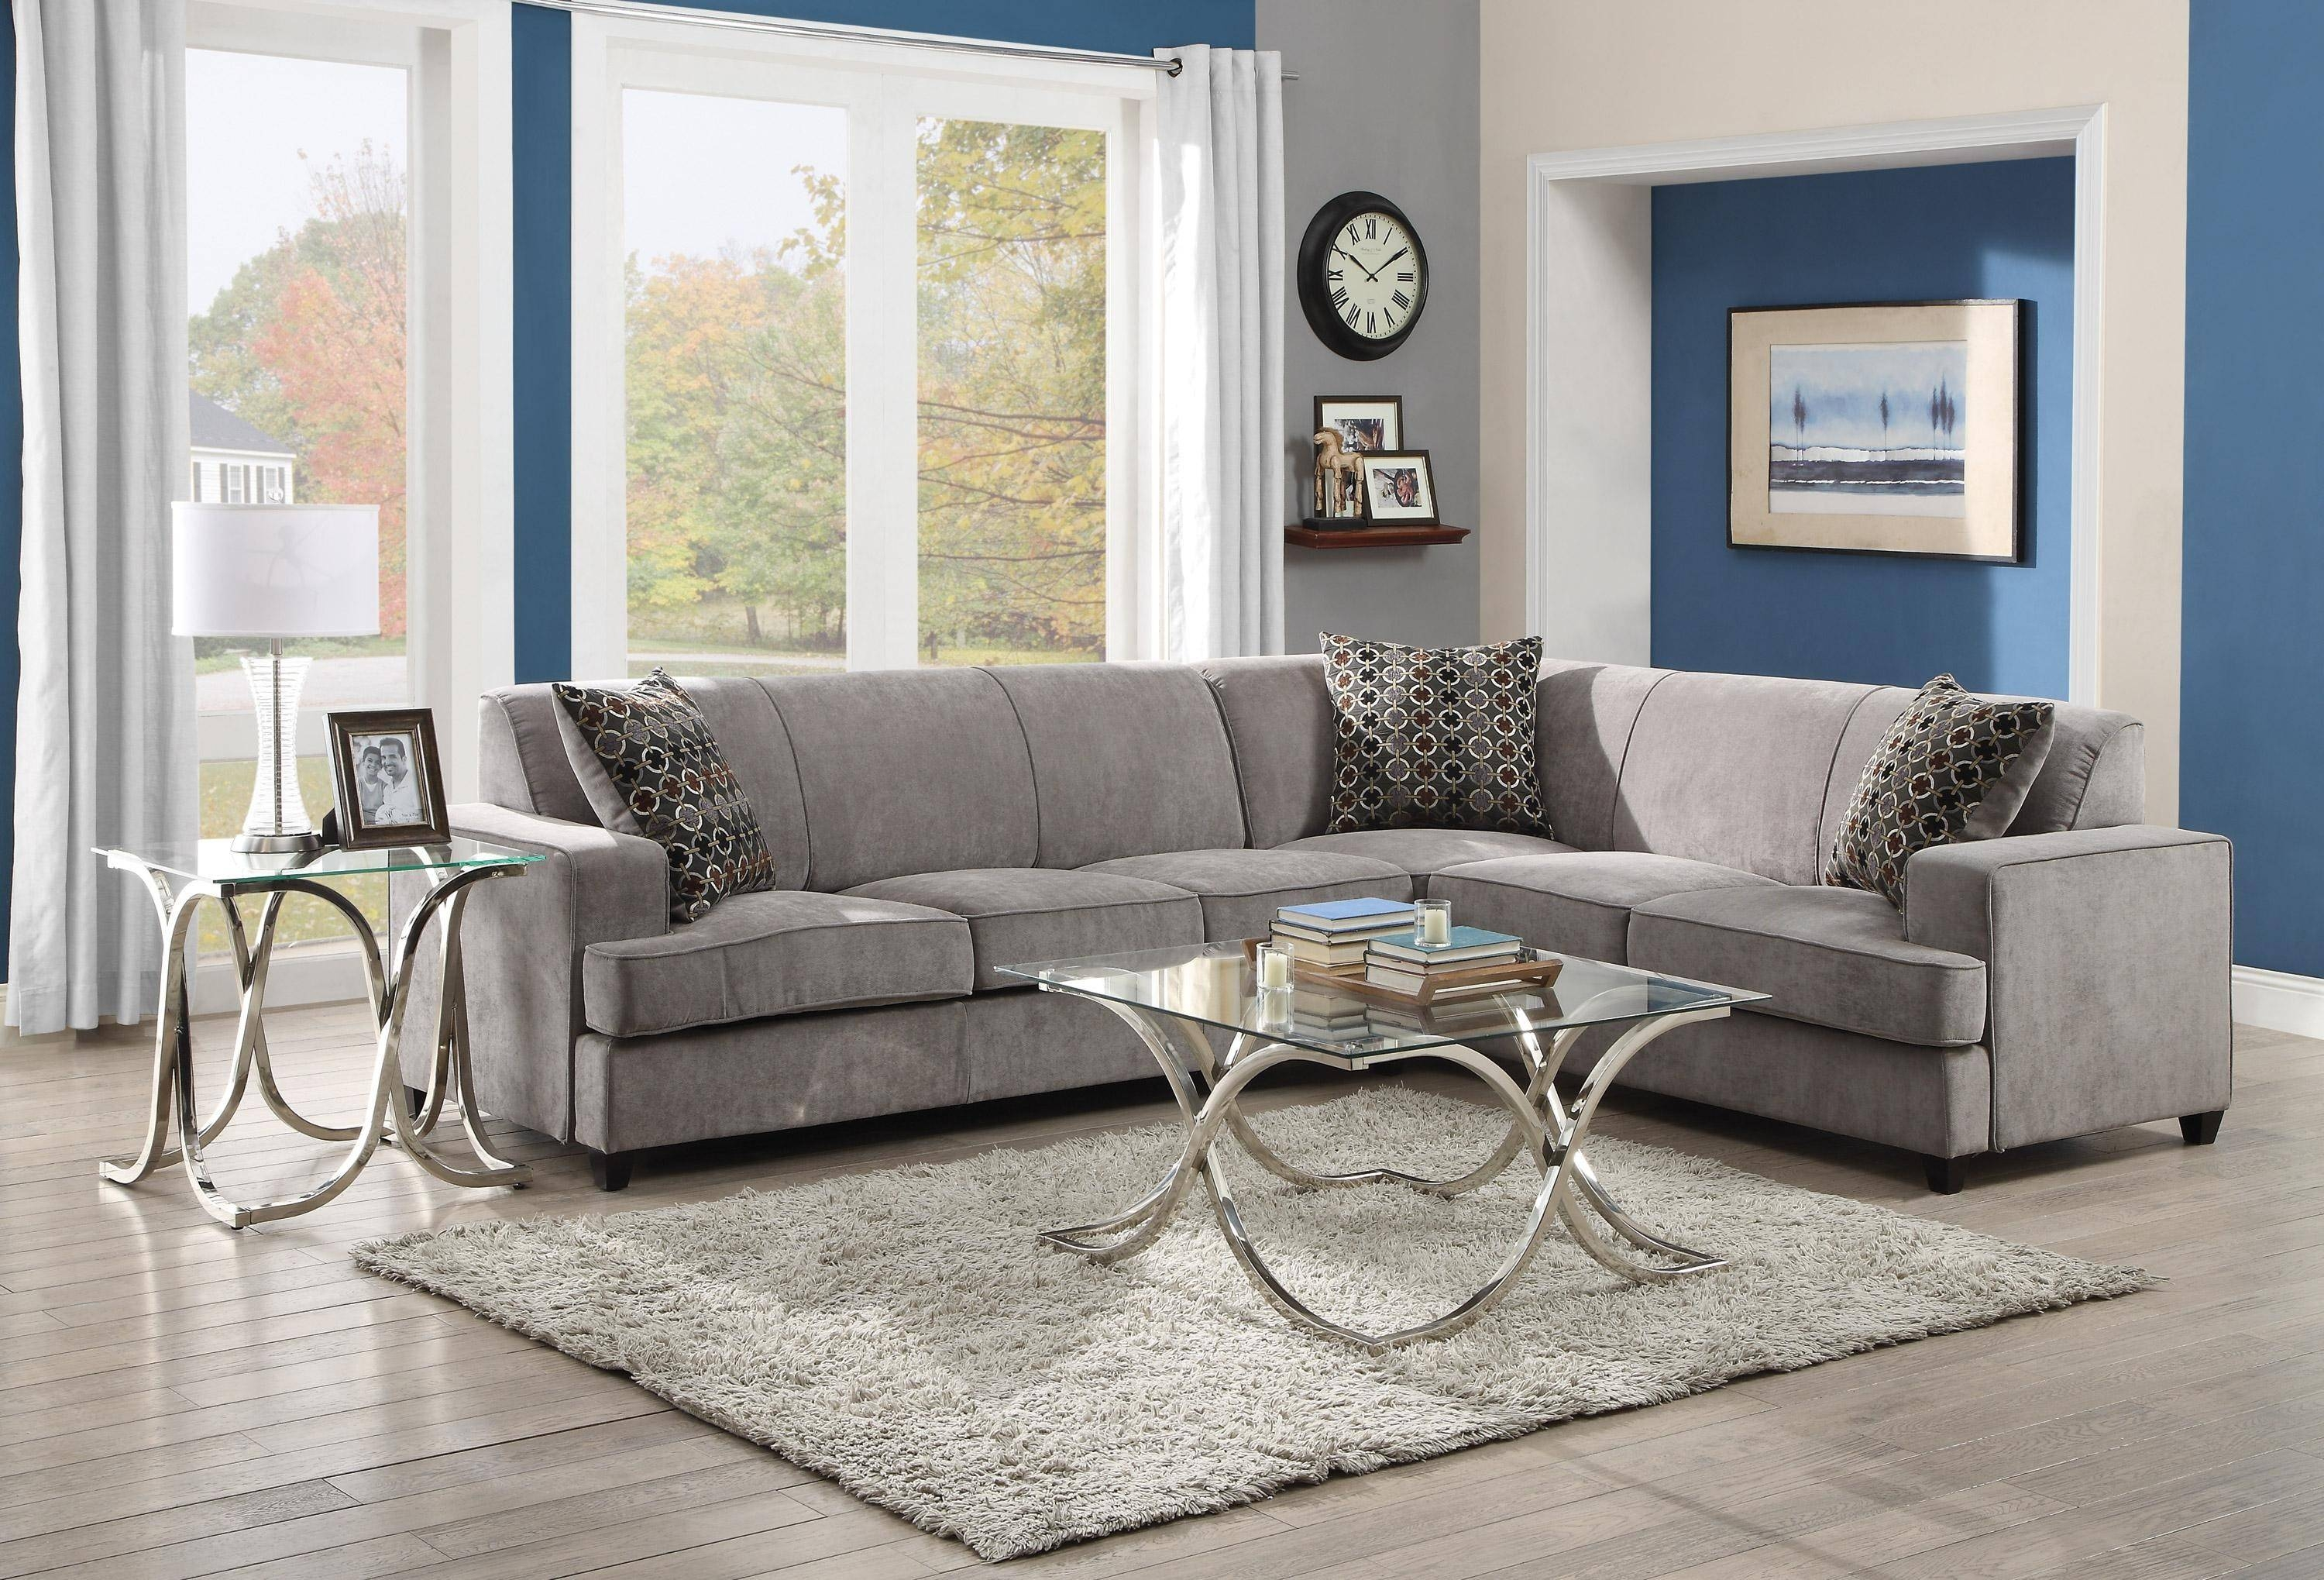 30 Ideas of Durable Sectional Sofa